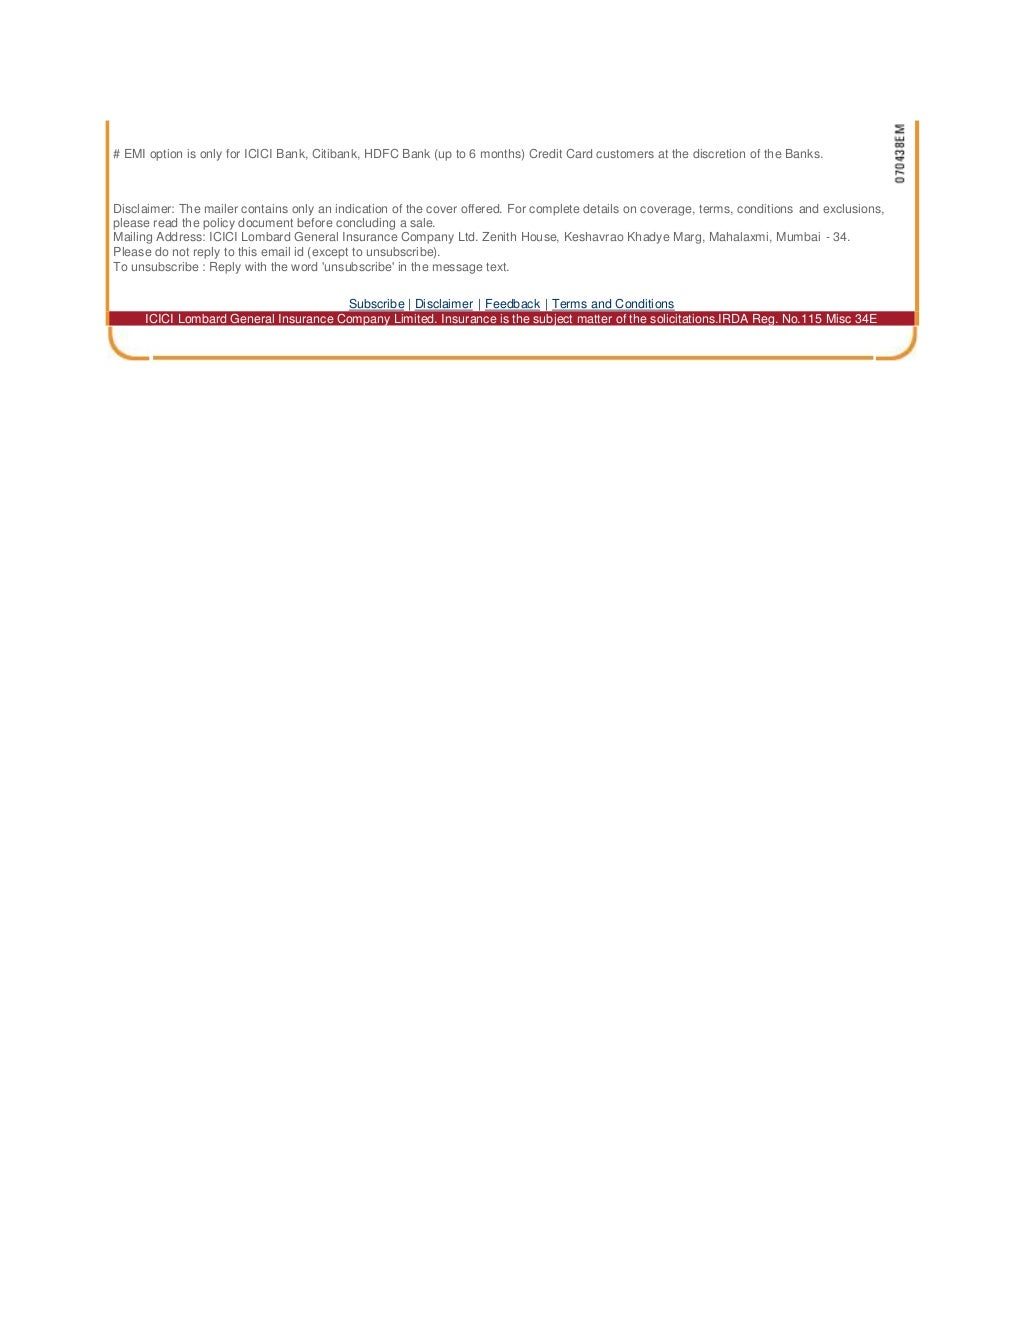 Icici lombard family floater health insurance policy (1)